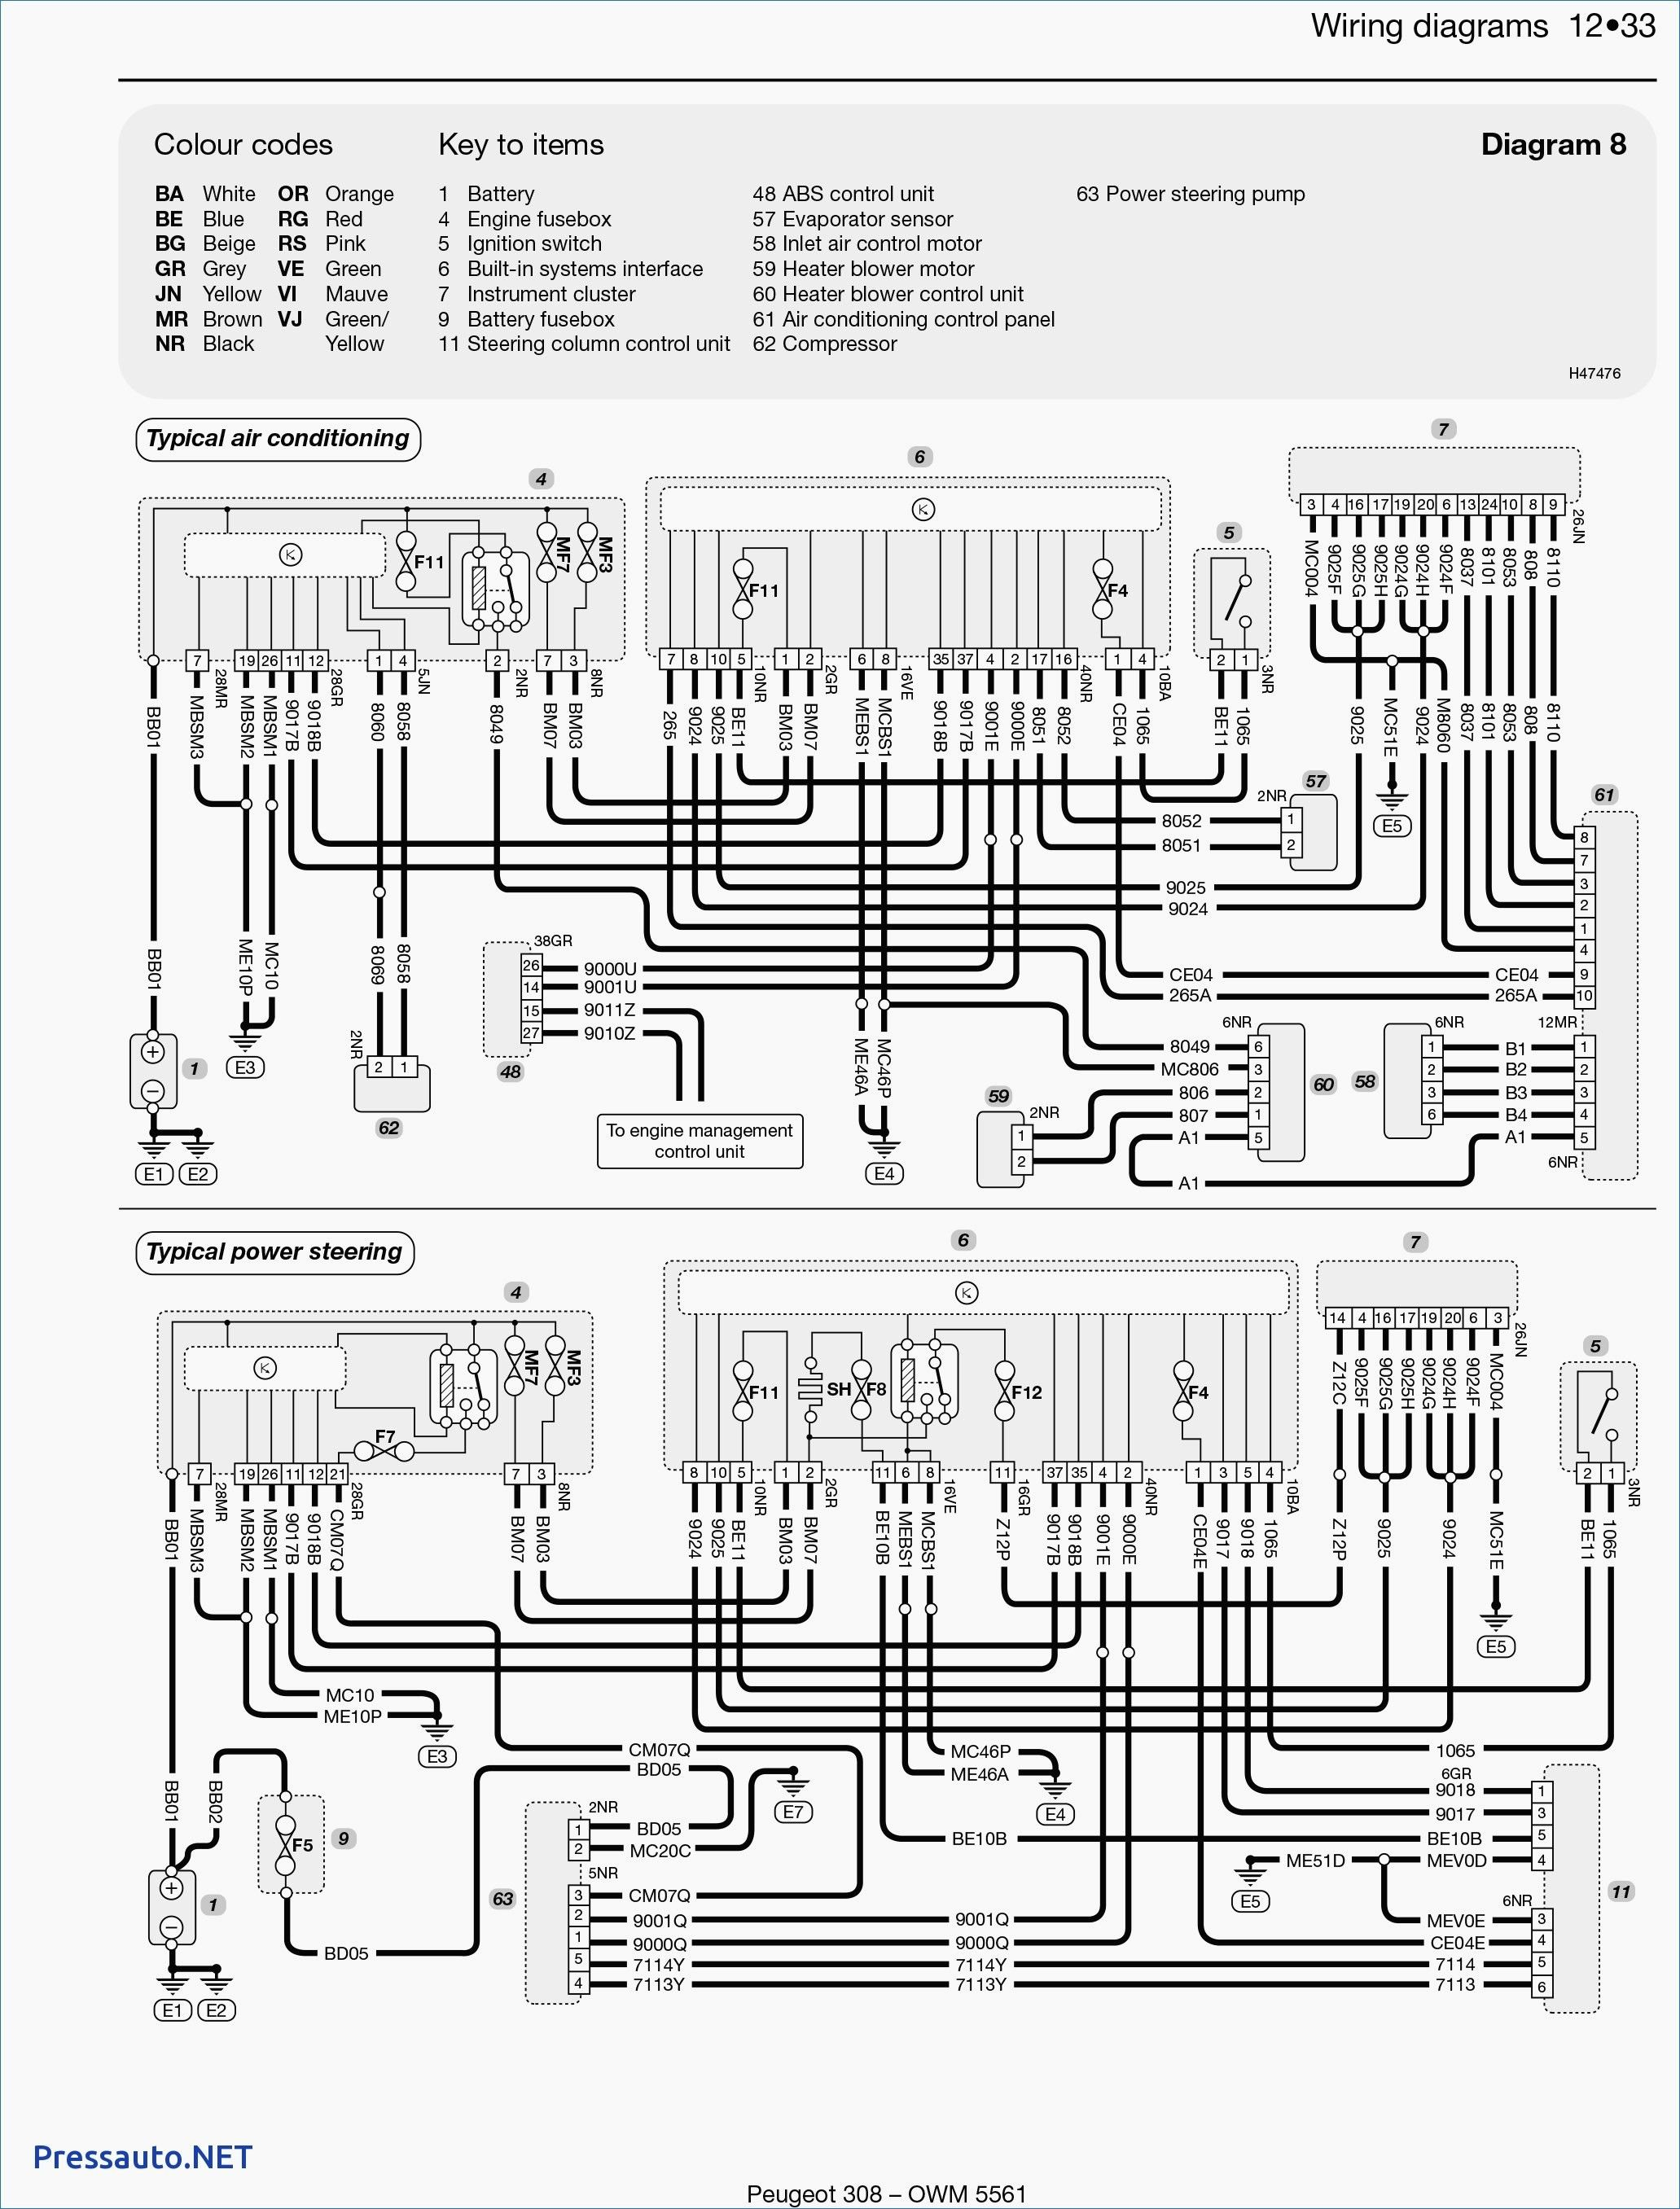 wiring diagram for peugeot 206 stereo best of fortable in ... rear door wiring harness for 2002 dodge 1500 door wiring schematic for 2008 gti #15